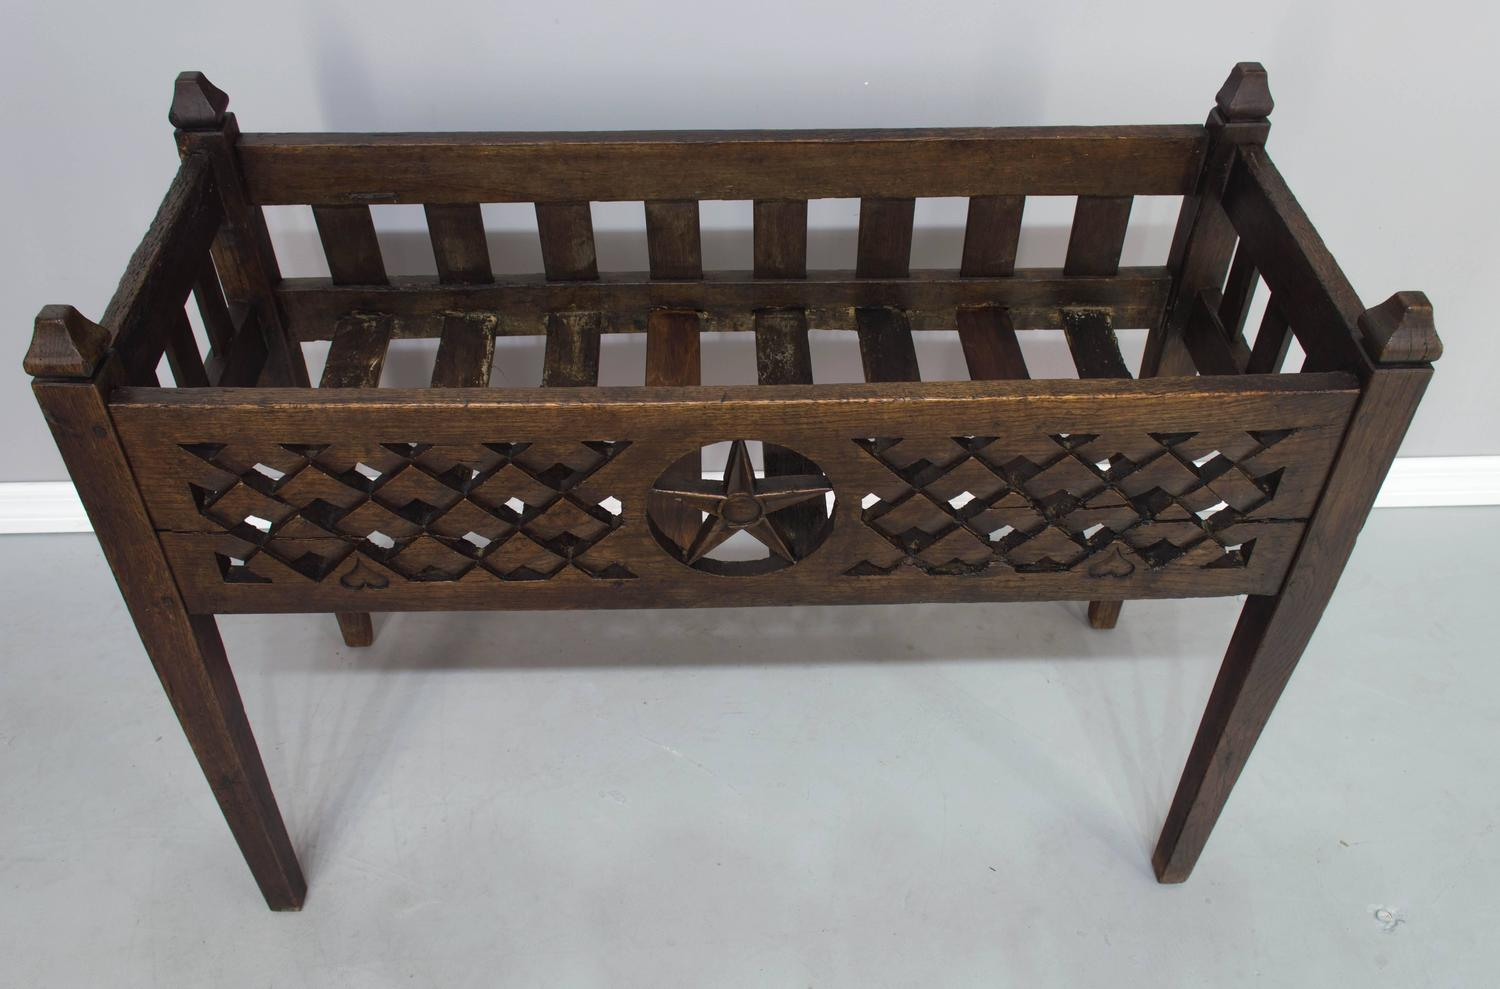 19th Century French Planter Box For Sale At 1stdibs